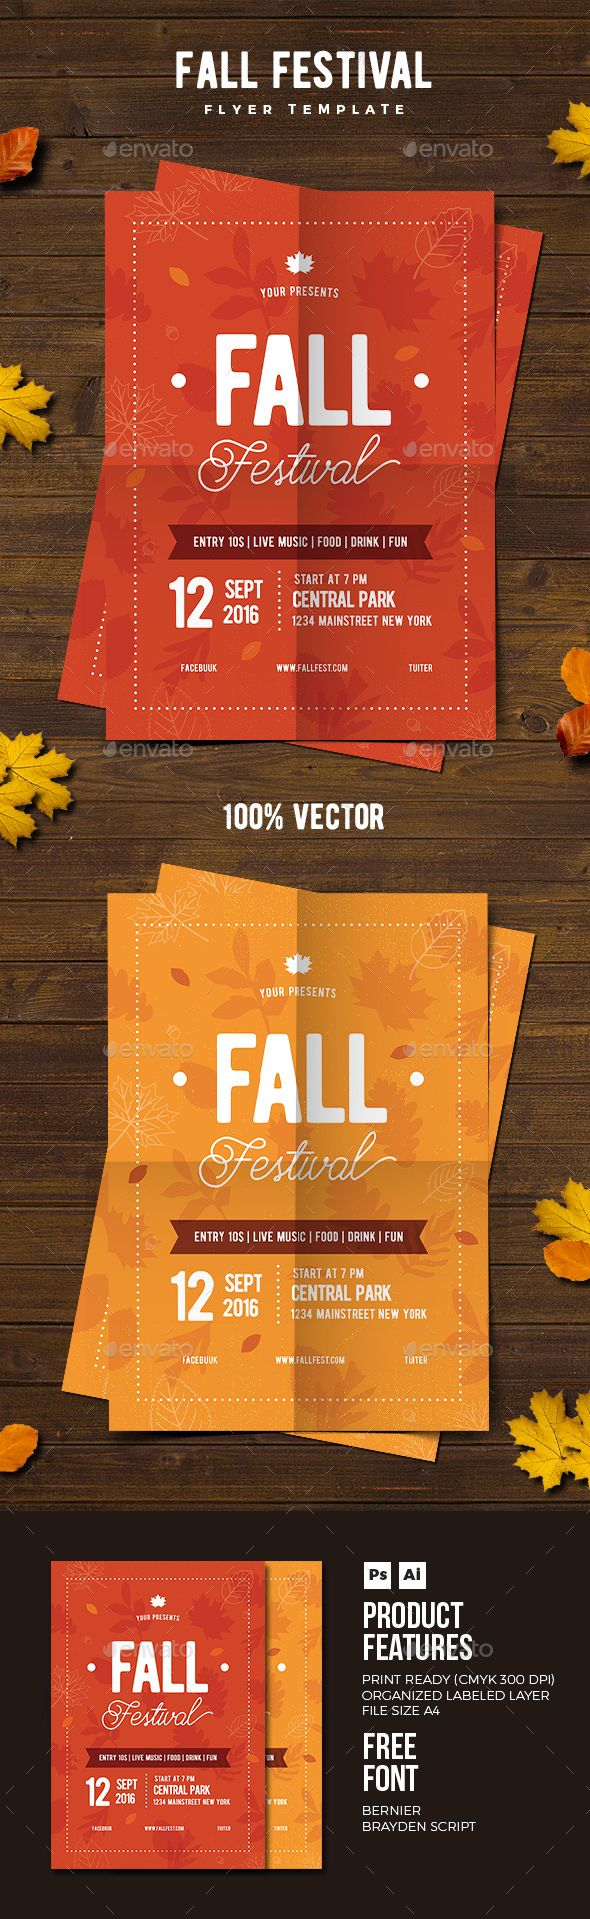 fall festival flyer 02 psd template november yellow leaf